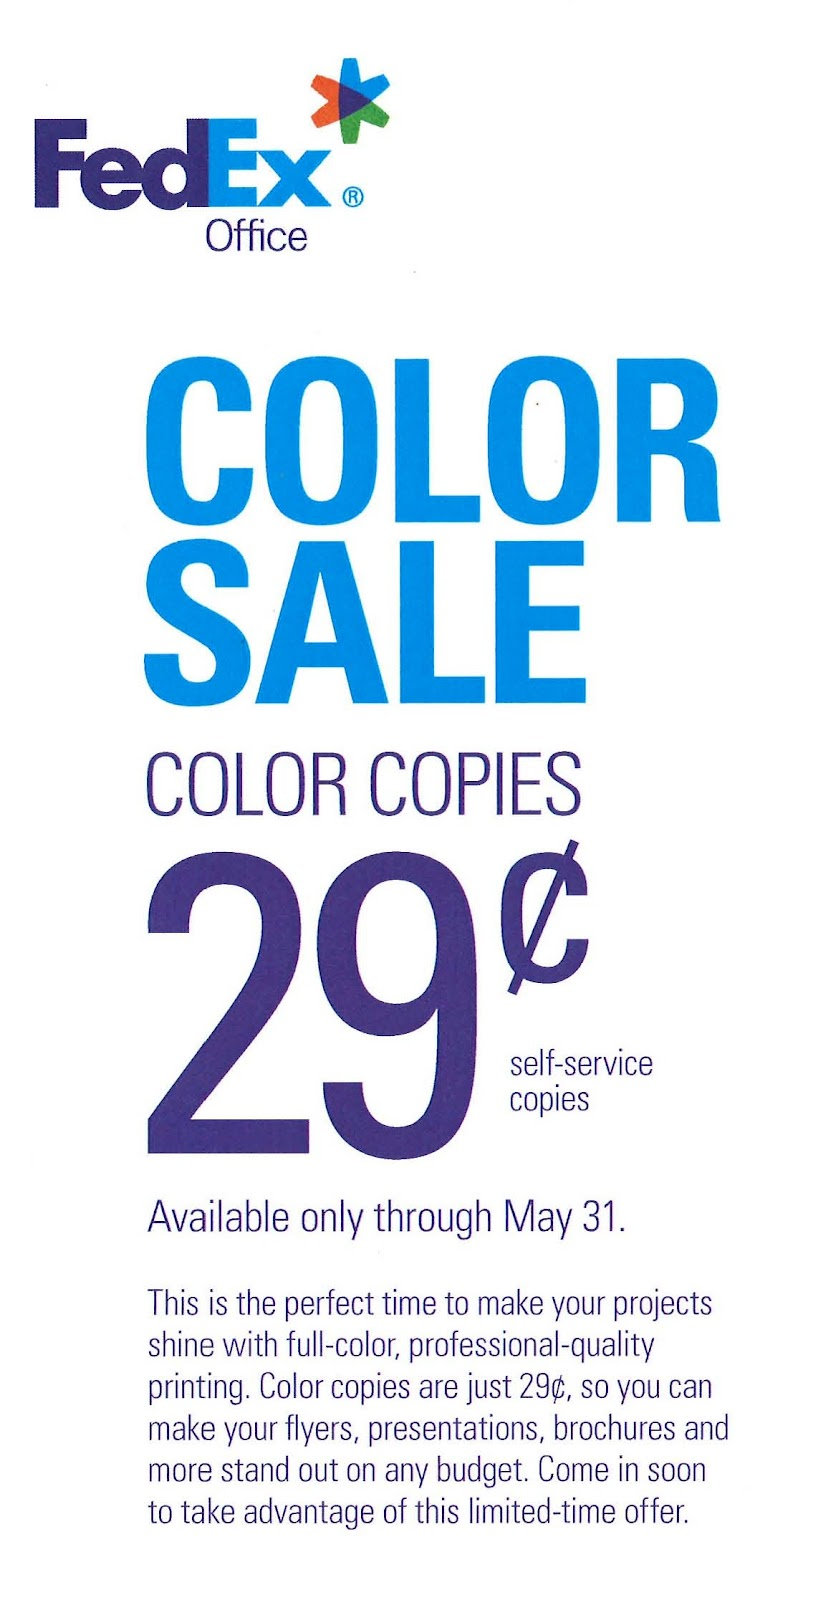 In Kansas City FedEx Office Went Public With Its 29 Cent Color Copies Promotion March 19